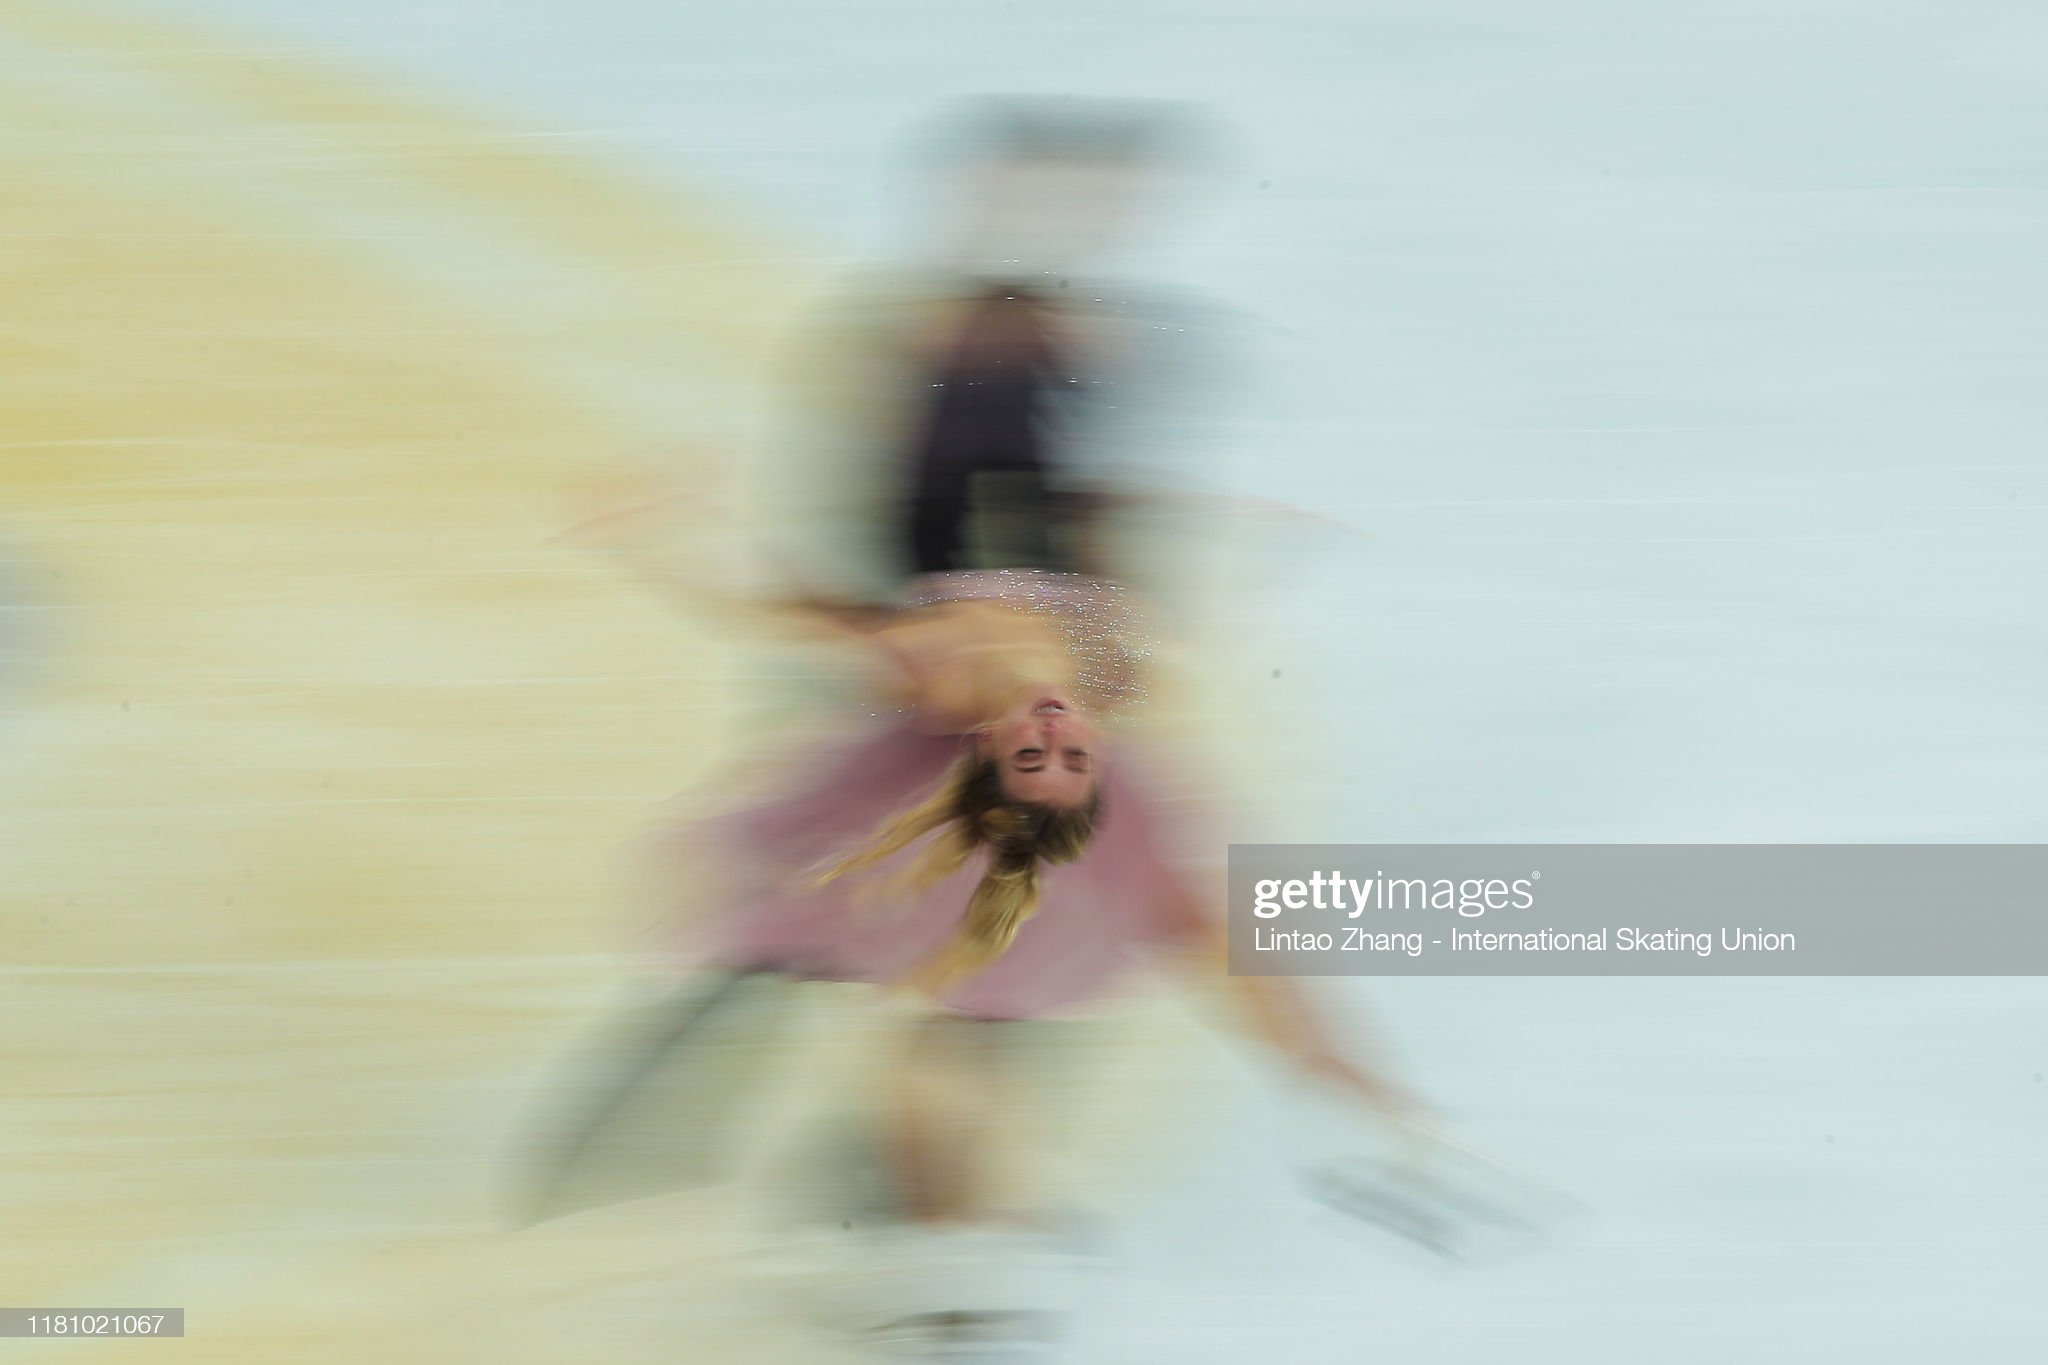 https://media.gettyimages.com/photos/victoria-sinitsina-and-nikita-katsalapov-of-russia-performs-in-the-picture-id1181021067?s=2048x2048